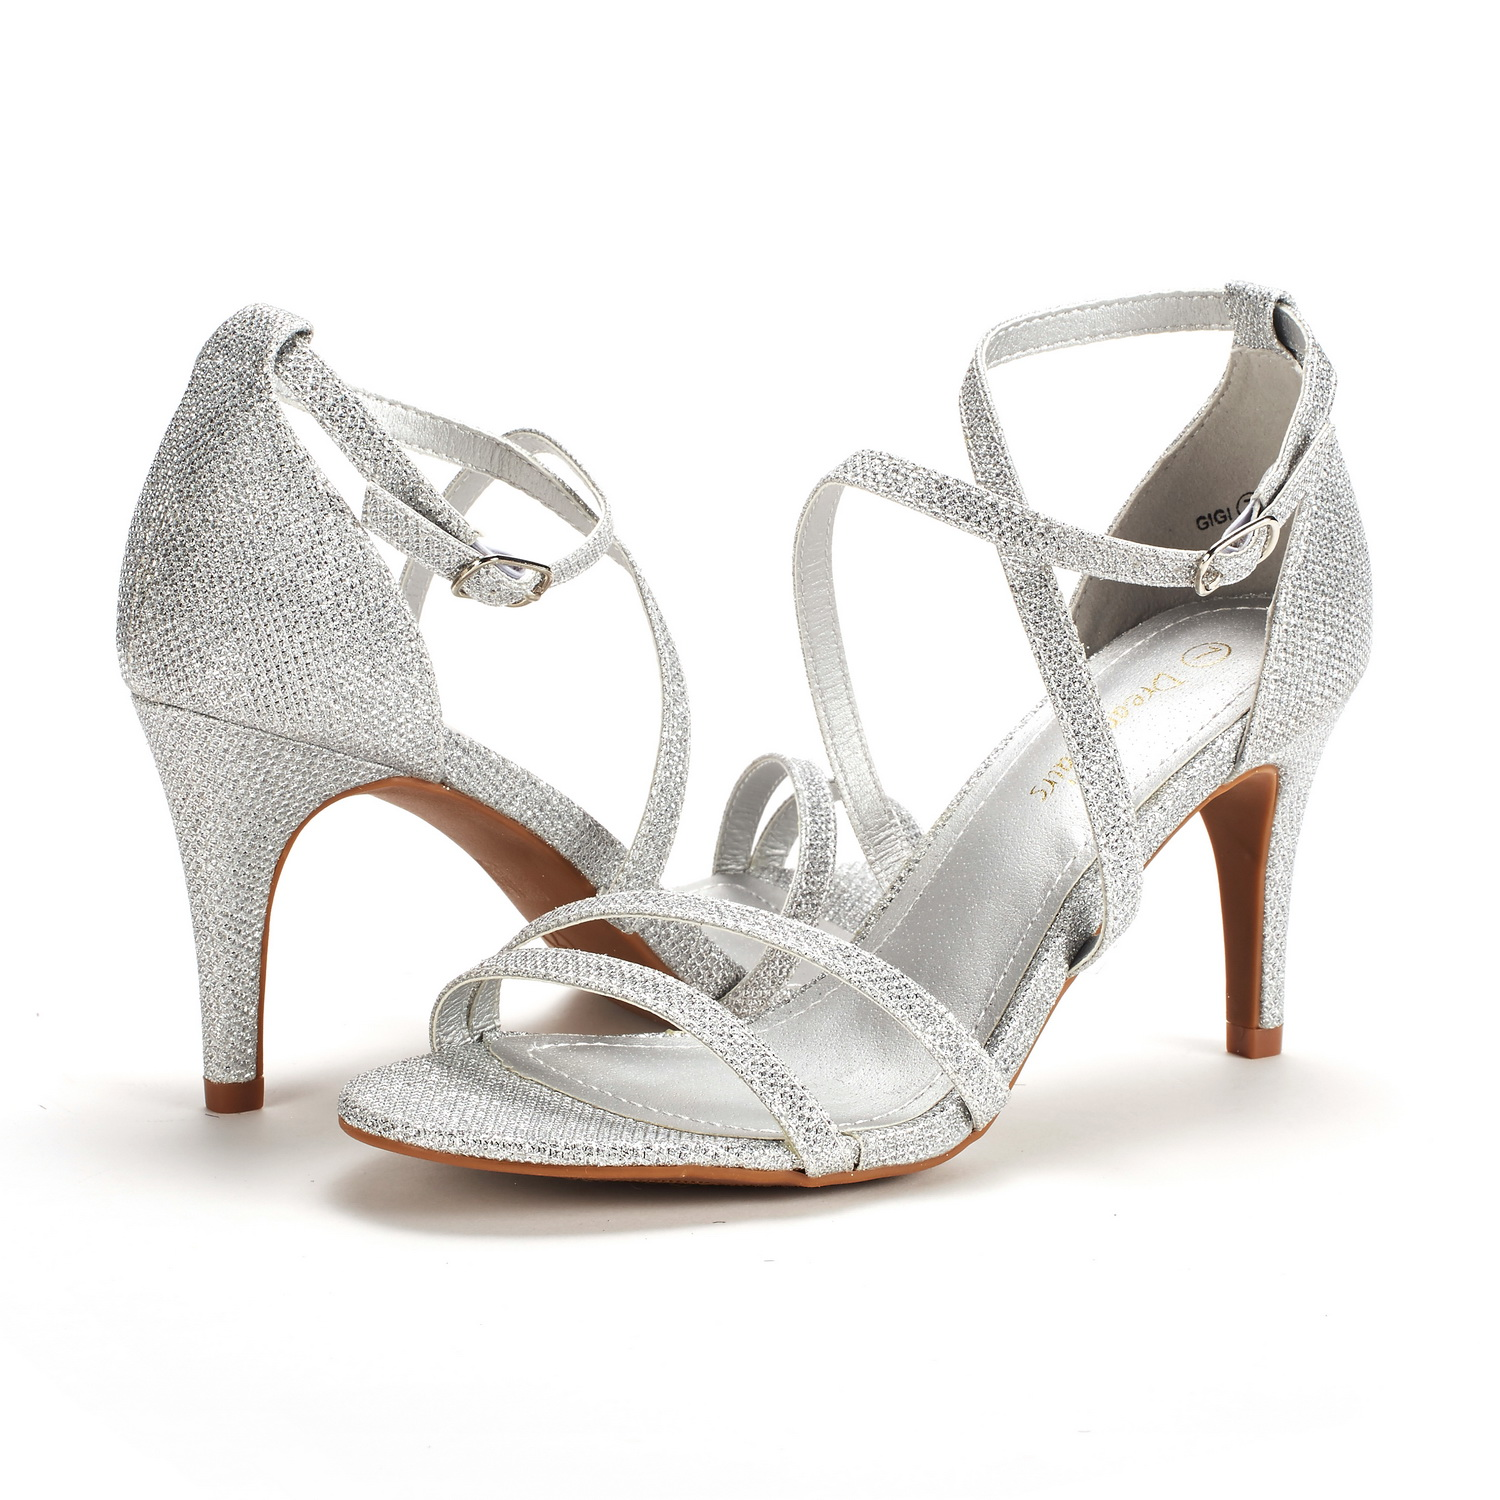 DREAM-PAIRS-Women-039-s-Ankle-Strap-High-Heel-Sandals-Dress-Shoes-Wedding-Party thumbnail 25